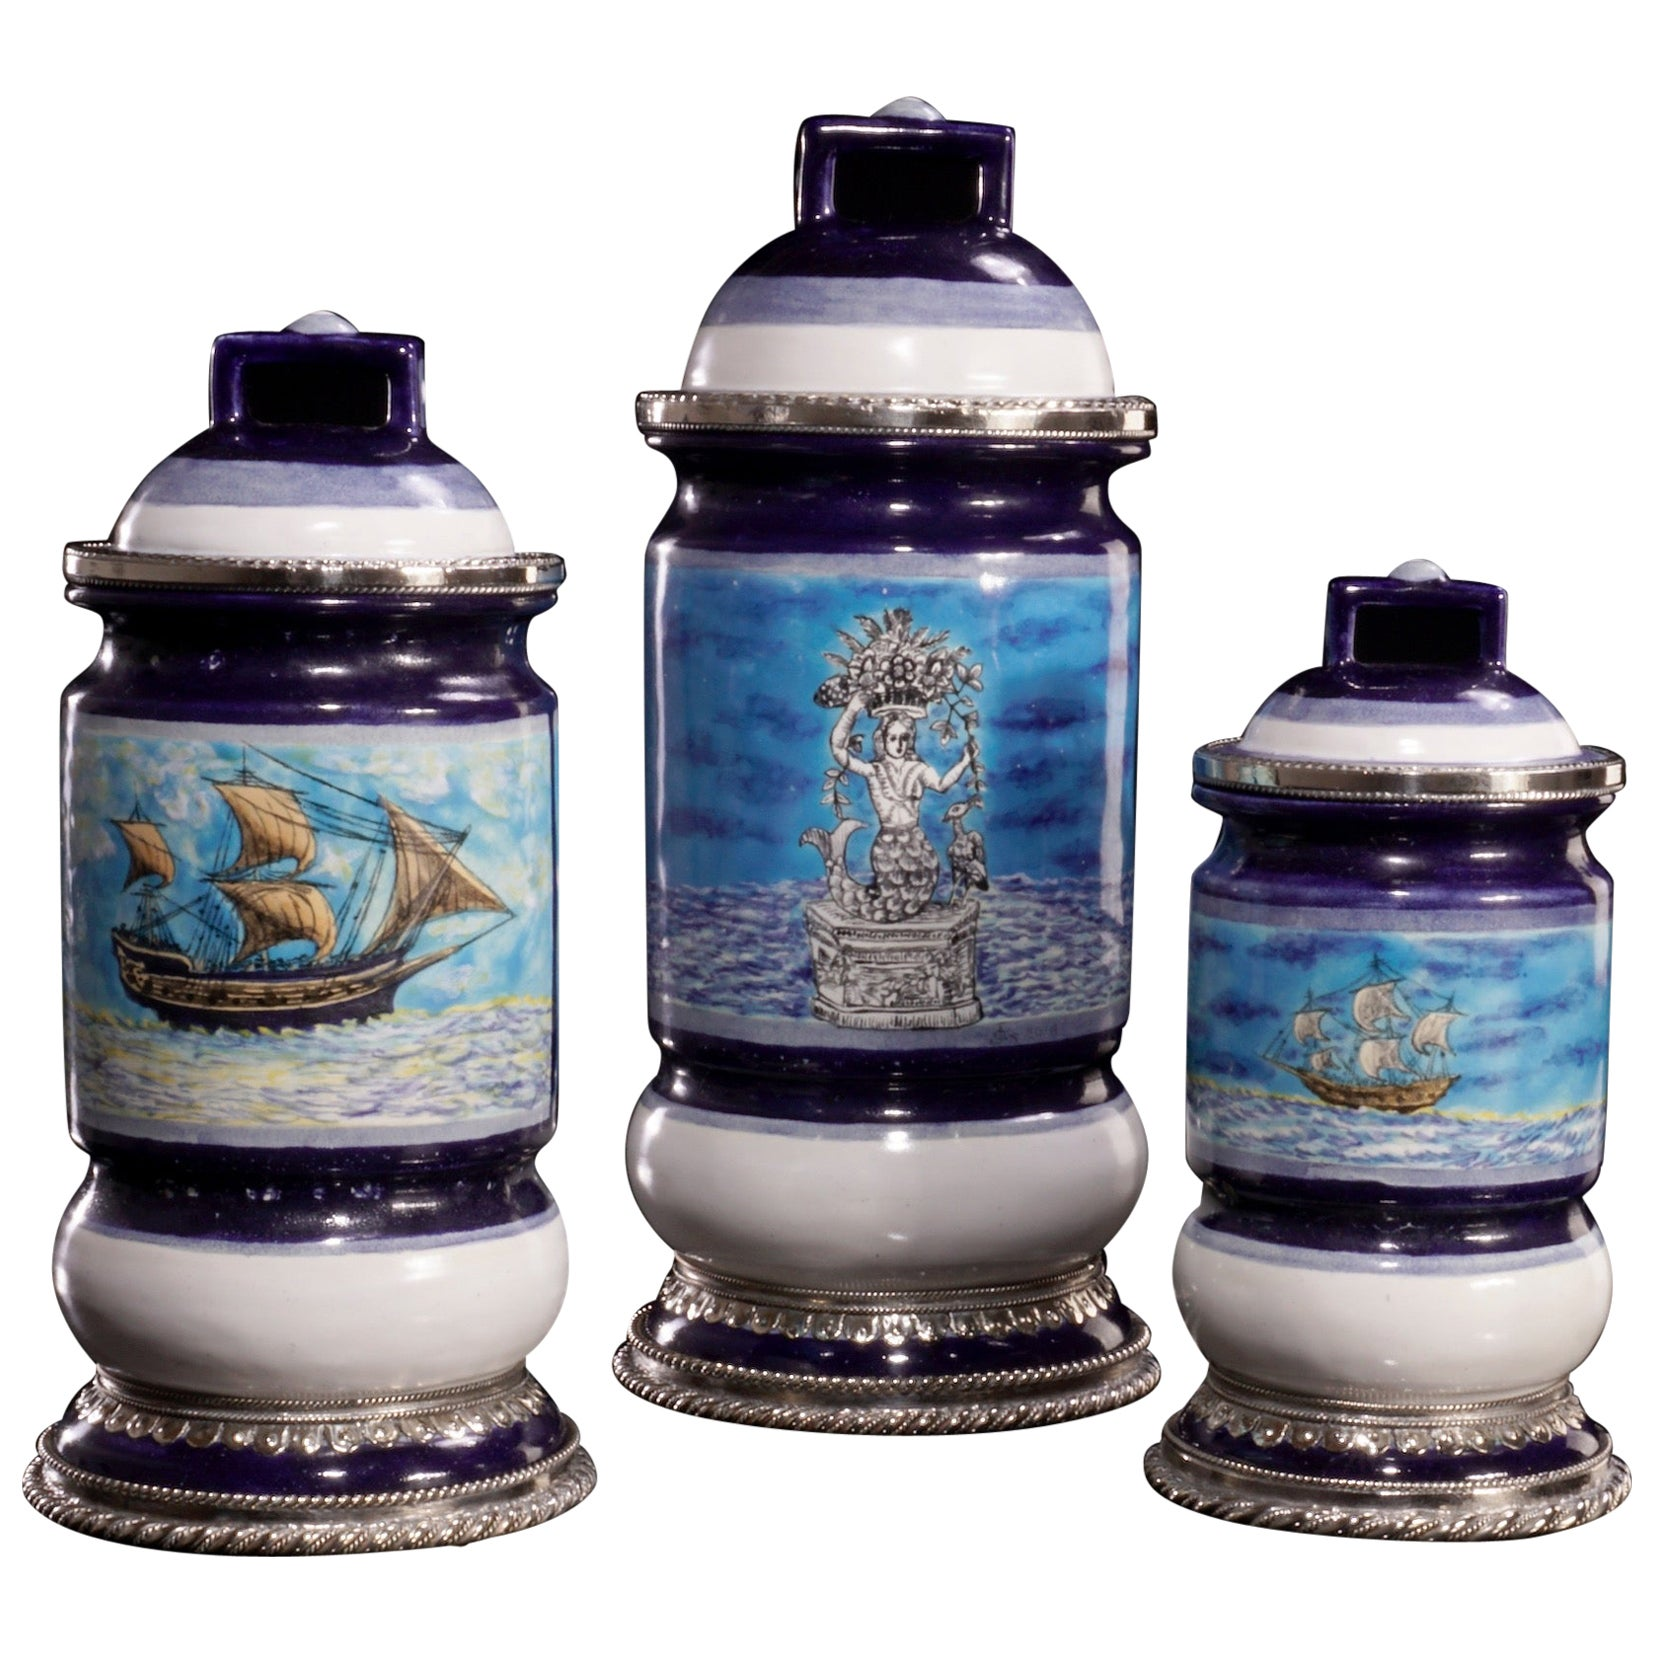 Ceramic and White Metal 'Alpaca' Jar with Hand Painted Motives Set